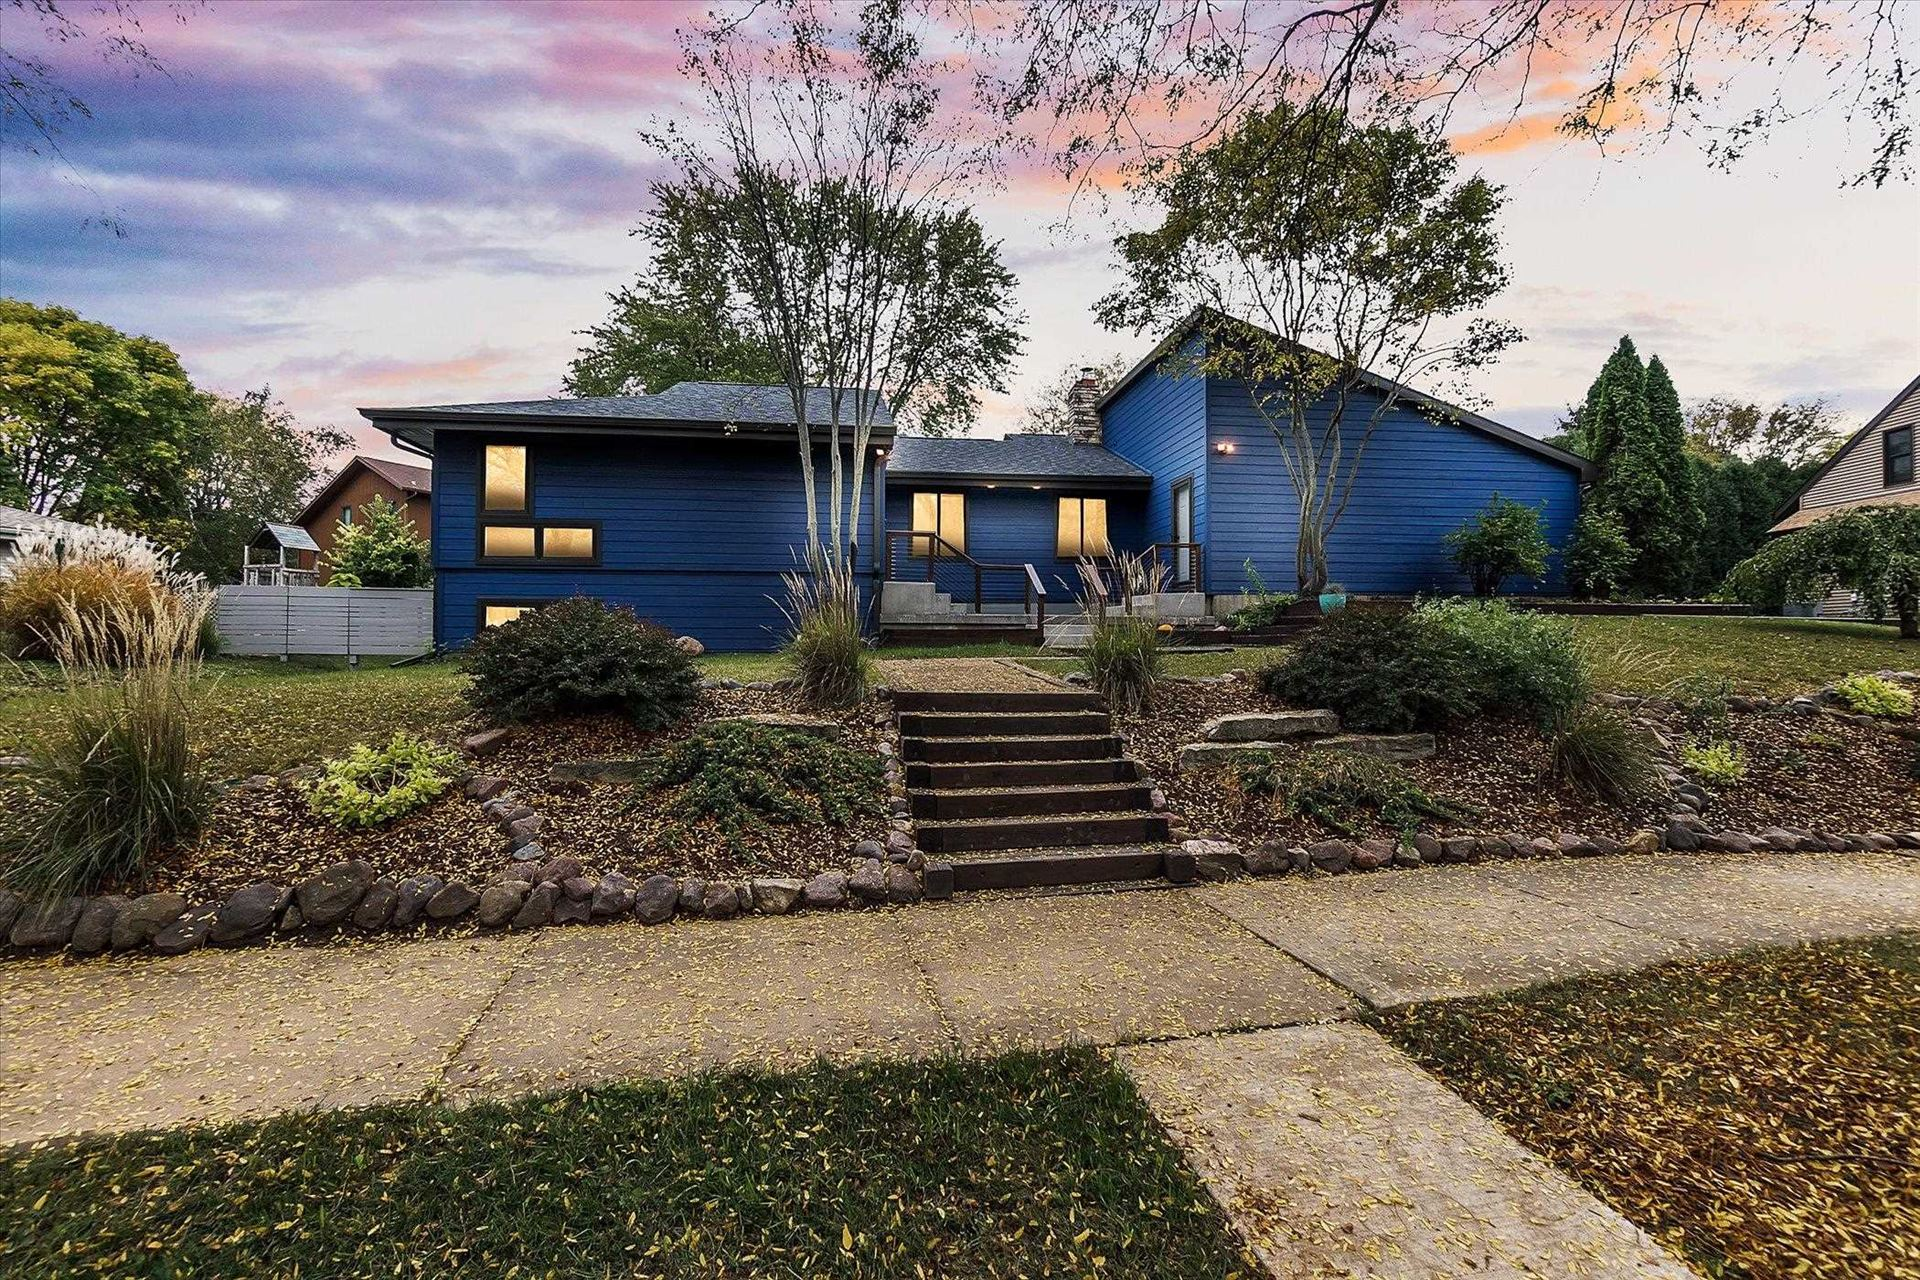 6805 Harvest Hill Rd, Madison, WI 53717 - #: 1921519